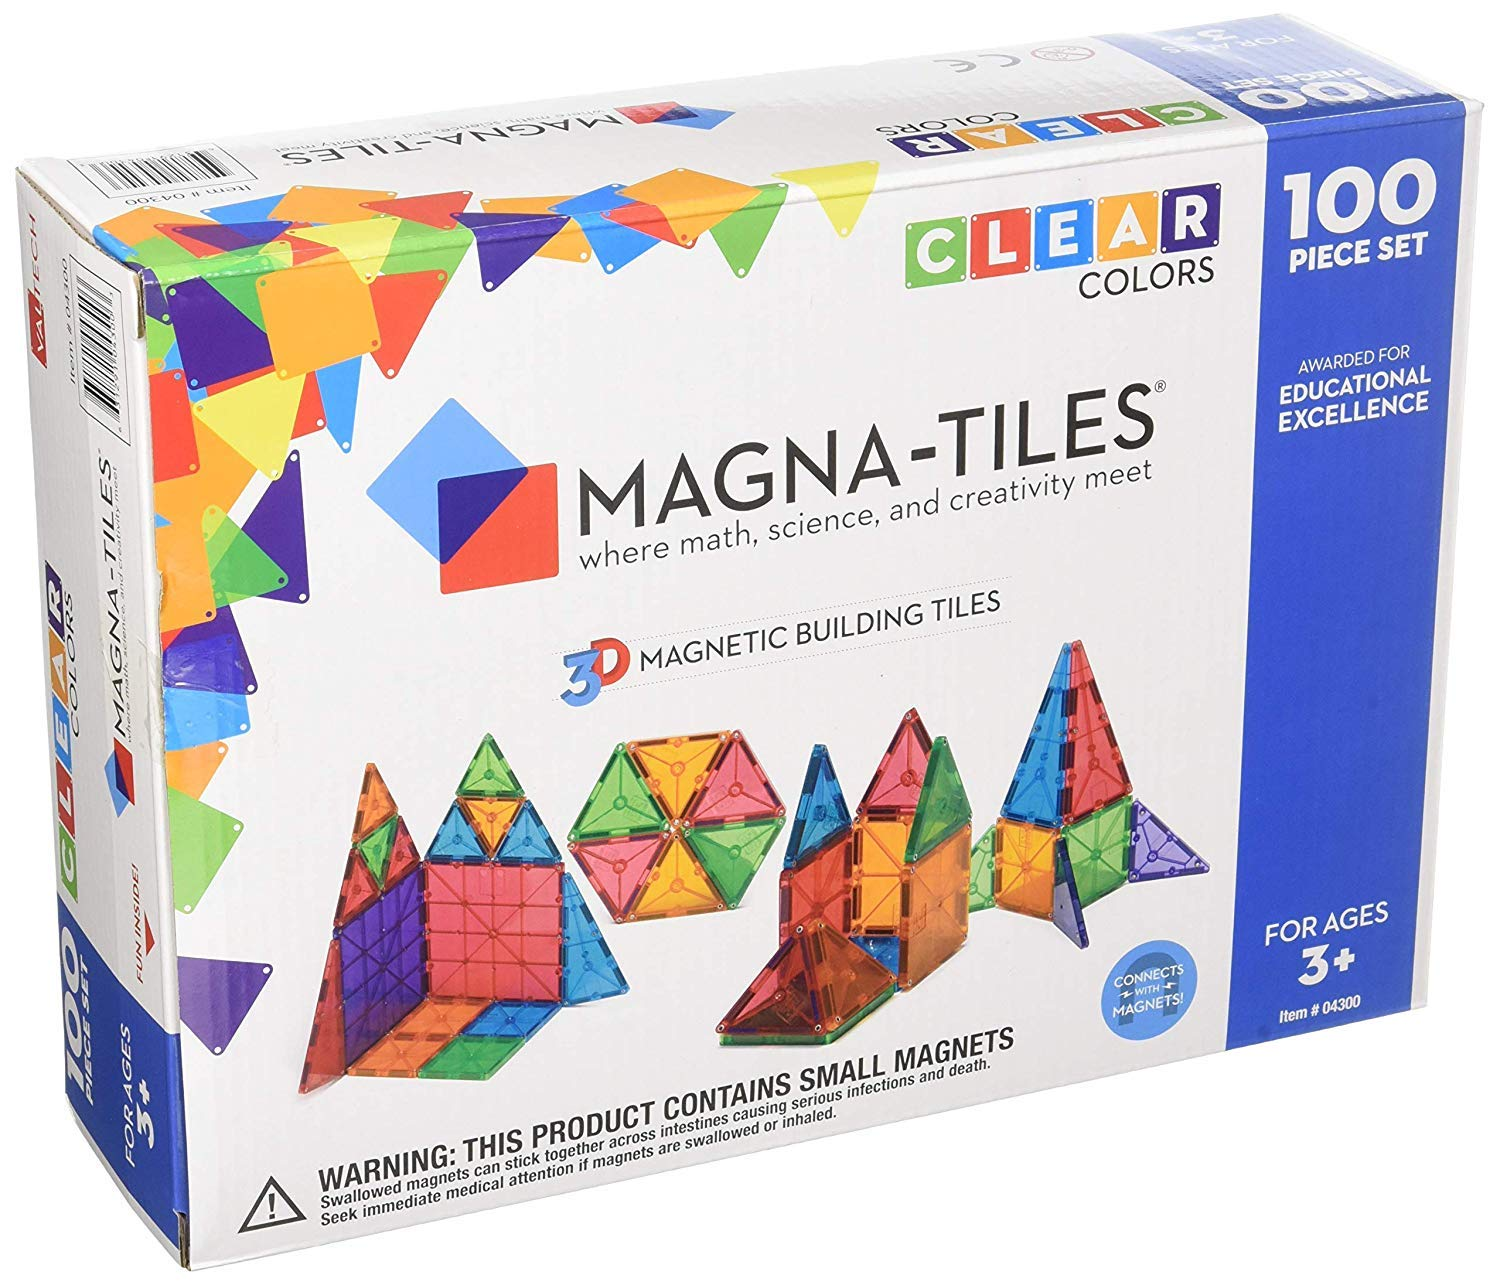 Magna-Tiles 100-Piece Clear Colors Set - The Original, Award-Winning Magnetic Building Tiles - Creativity and Educational - STEM Approved Bundled 02300 Solid Colors 100 Piece Set by Magna-Tiles (Image #1)